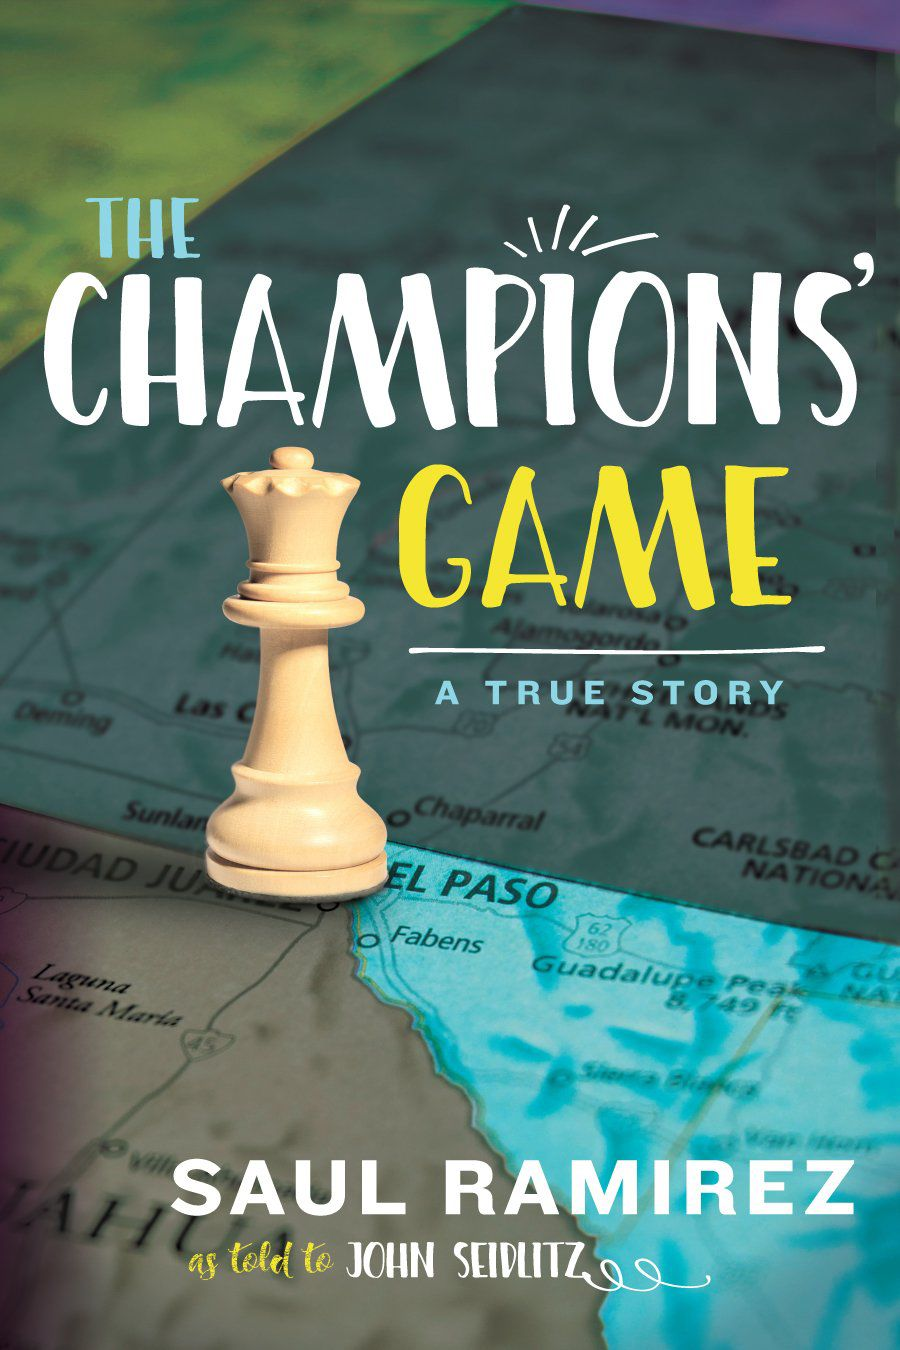 Catch 'The Champions' Game'